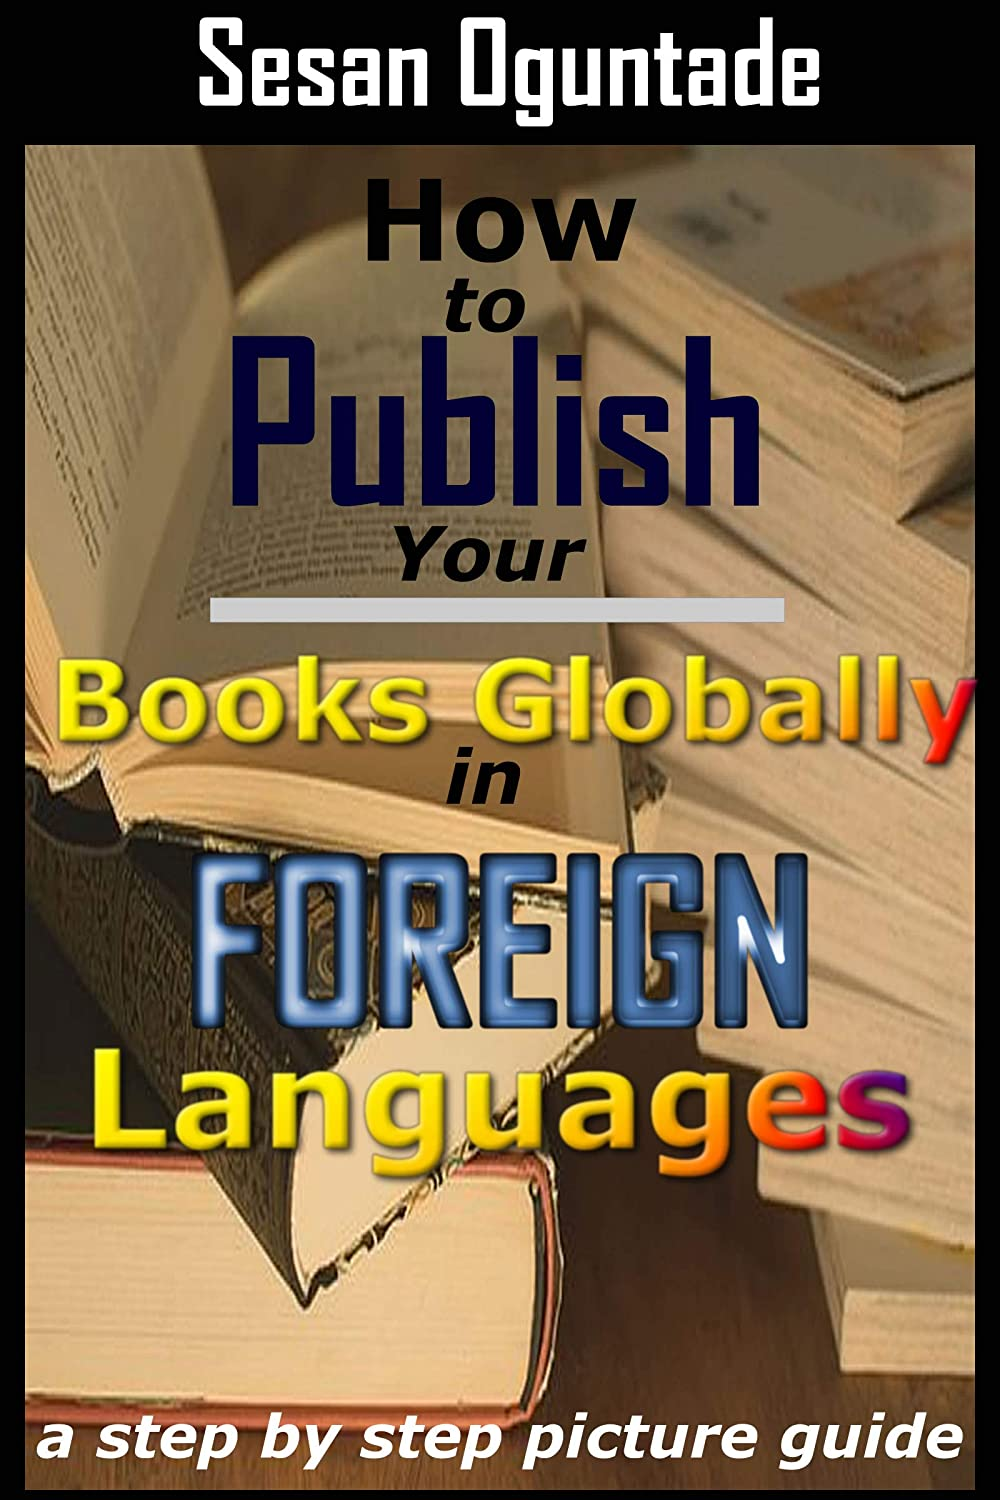 How to publish your books globally